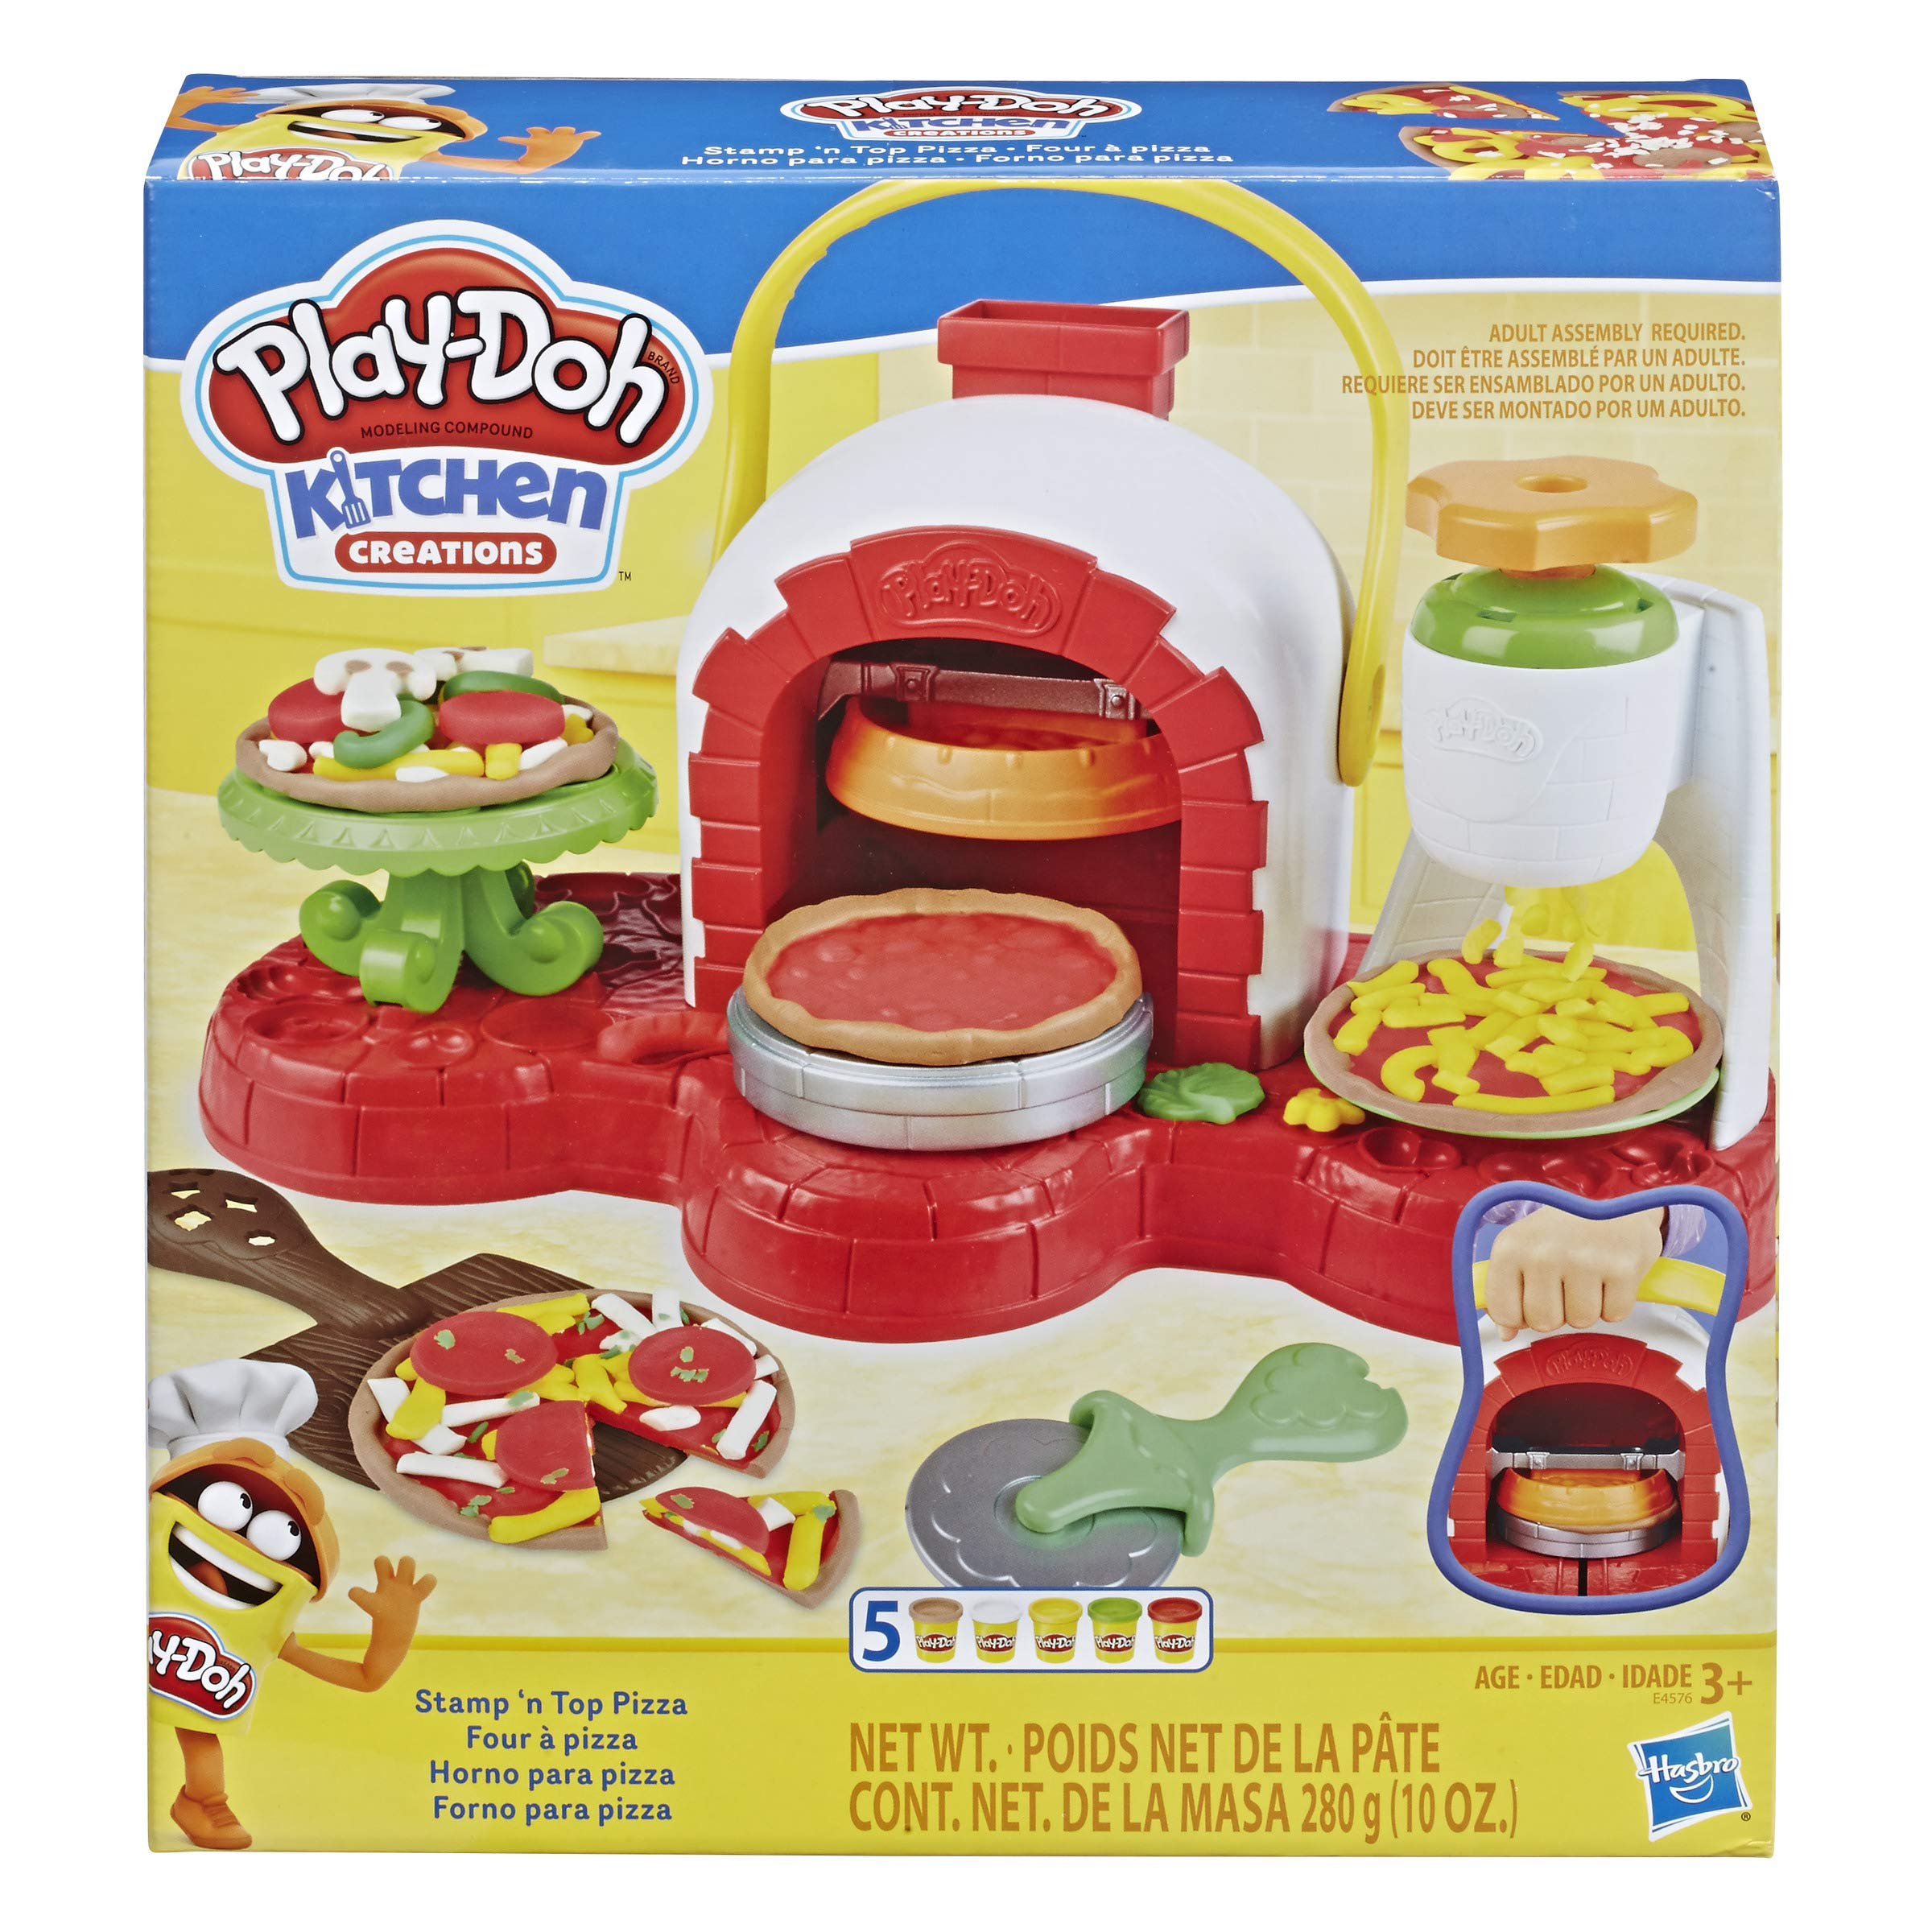 Play Doh Kitchen Creations Stamp N Top Pizza Oven Playset Inc 5 Tubs Of Dough Kids Creative Toys Ages 3 Amazon Com Au Toys Games